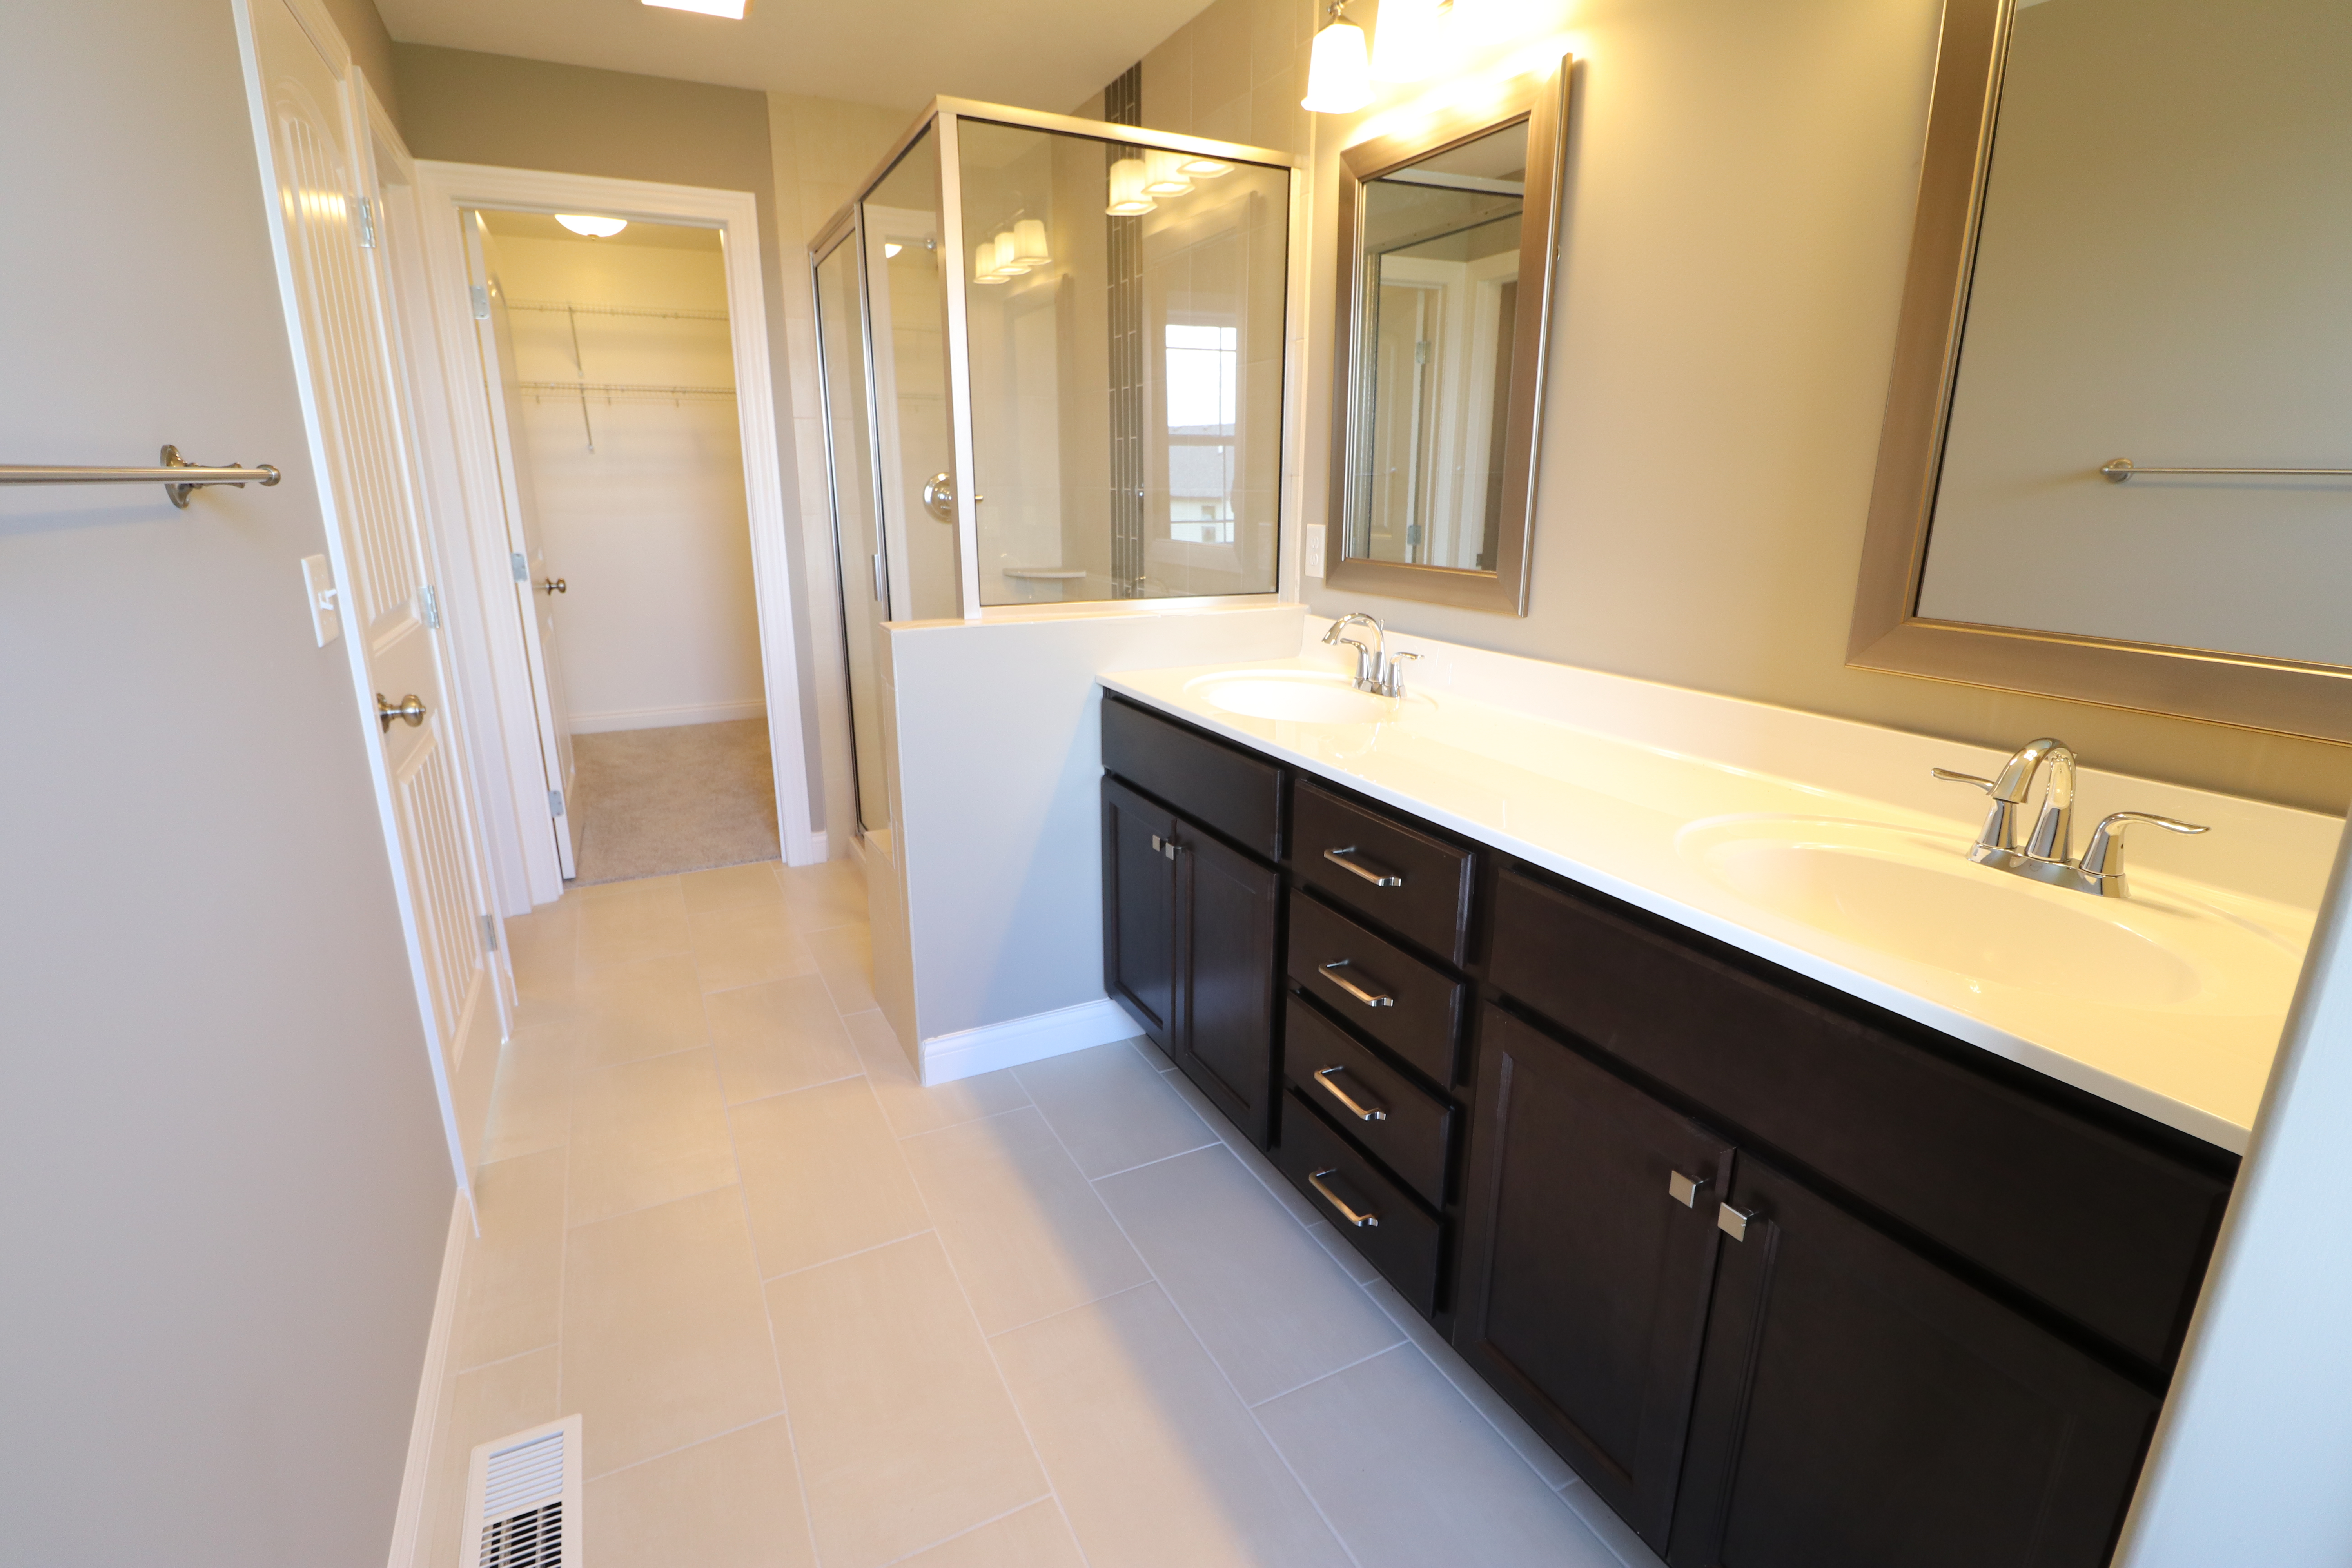 House for sale in the Dunlap peoria area bathroom